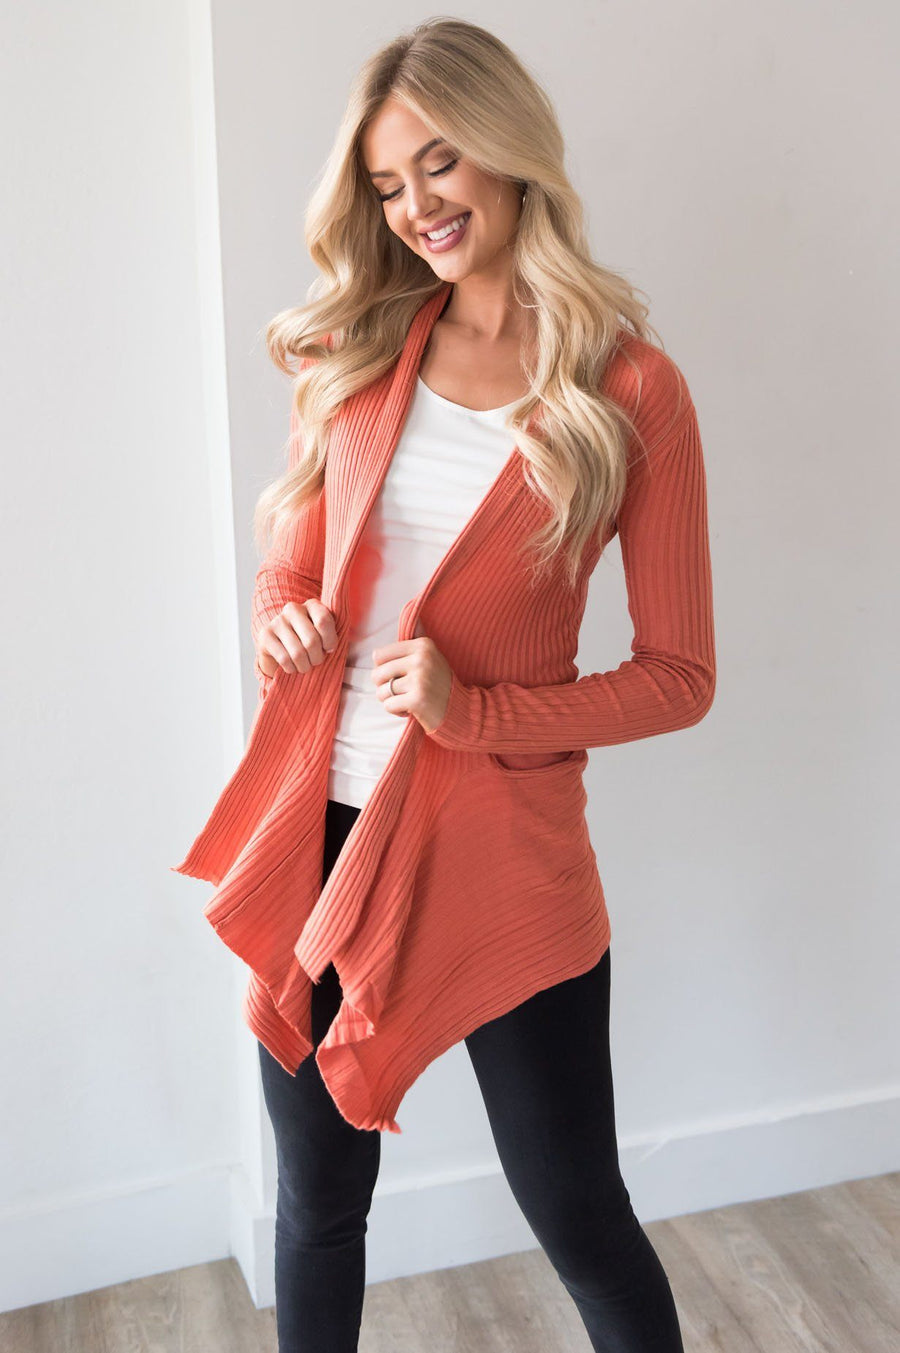 Sunny Days Ahead Modest Cardigan Tops vendor-unknown